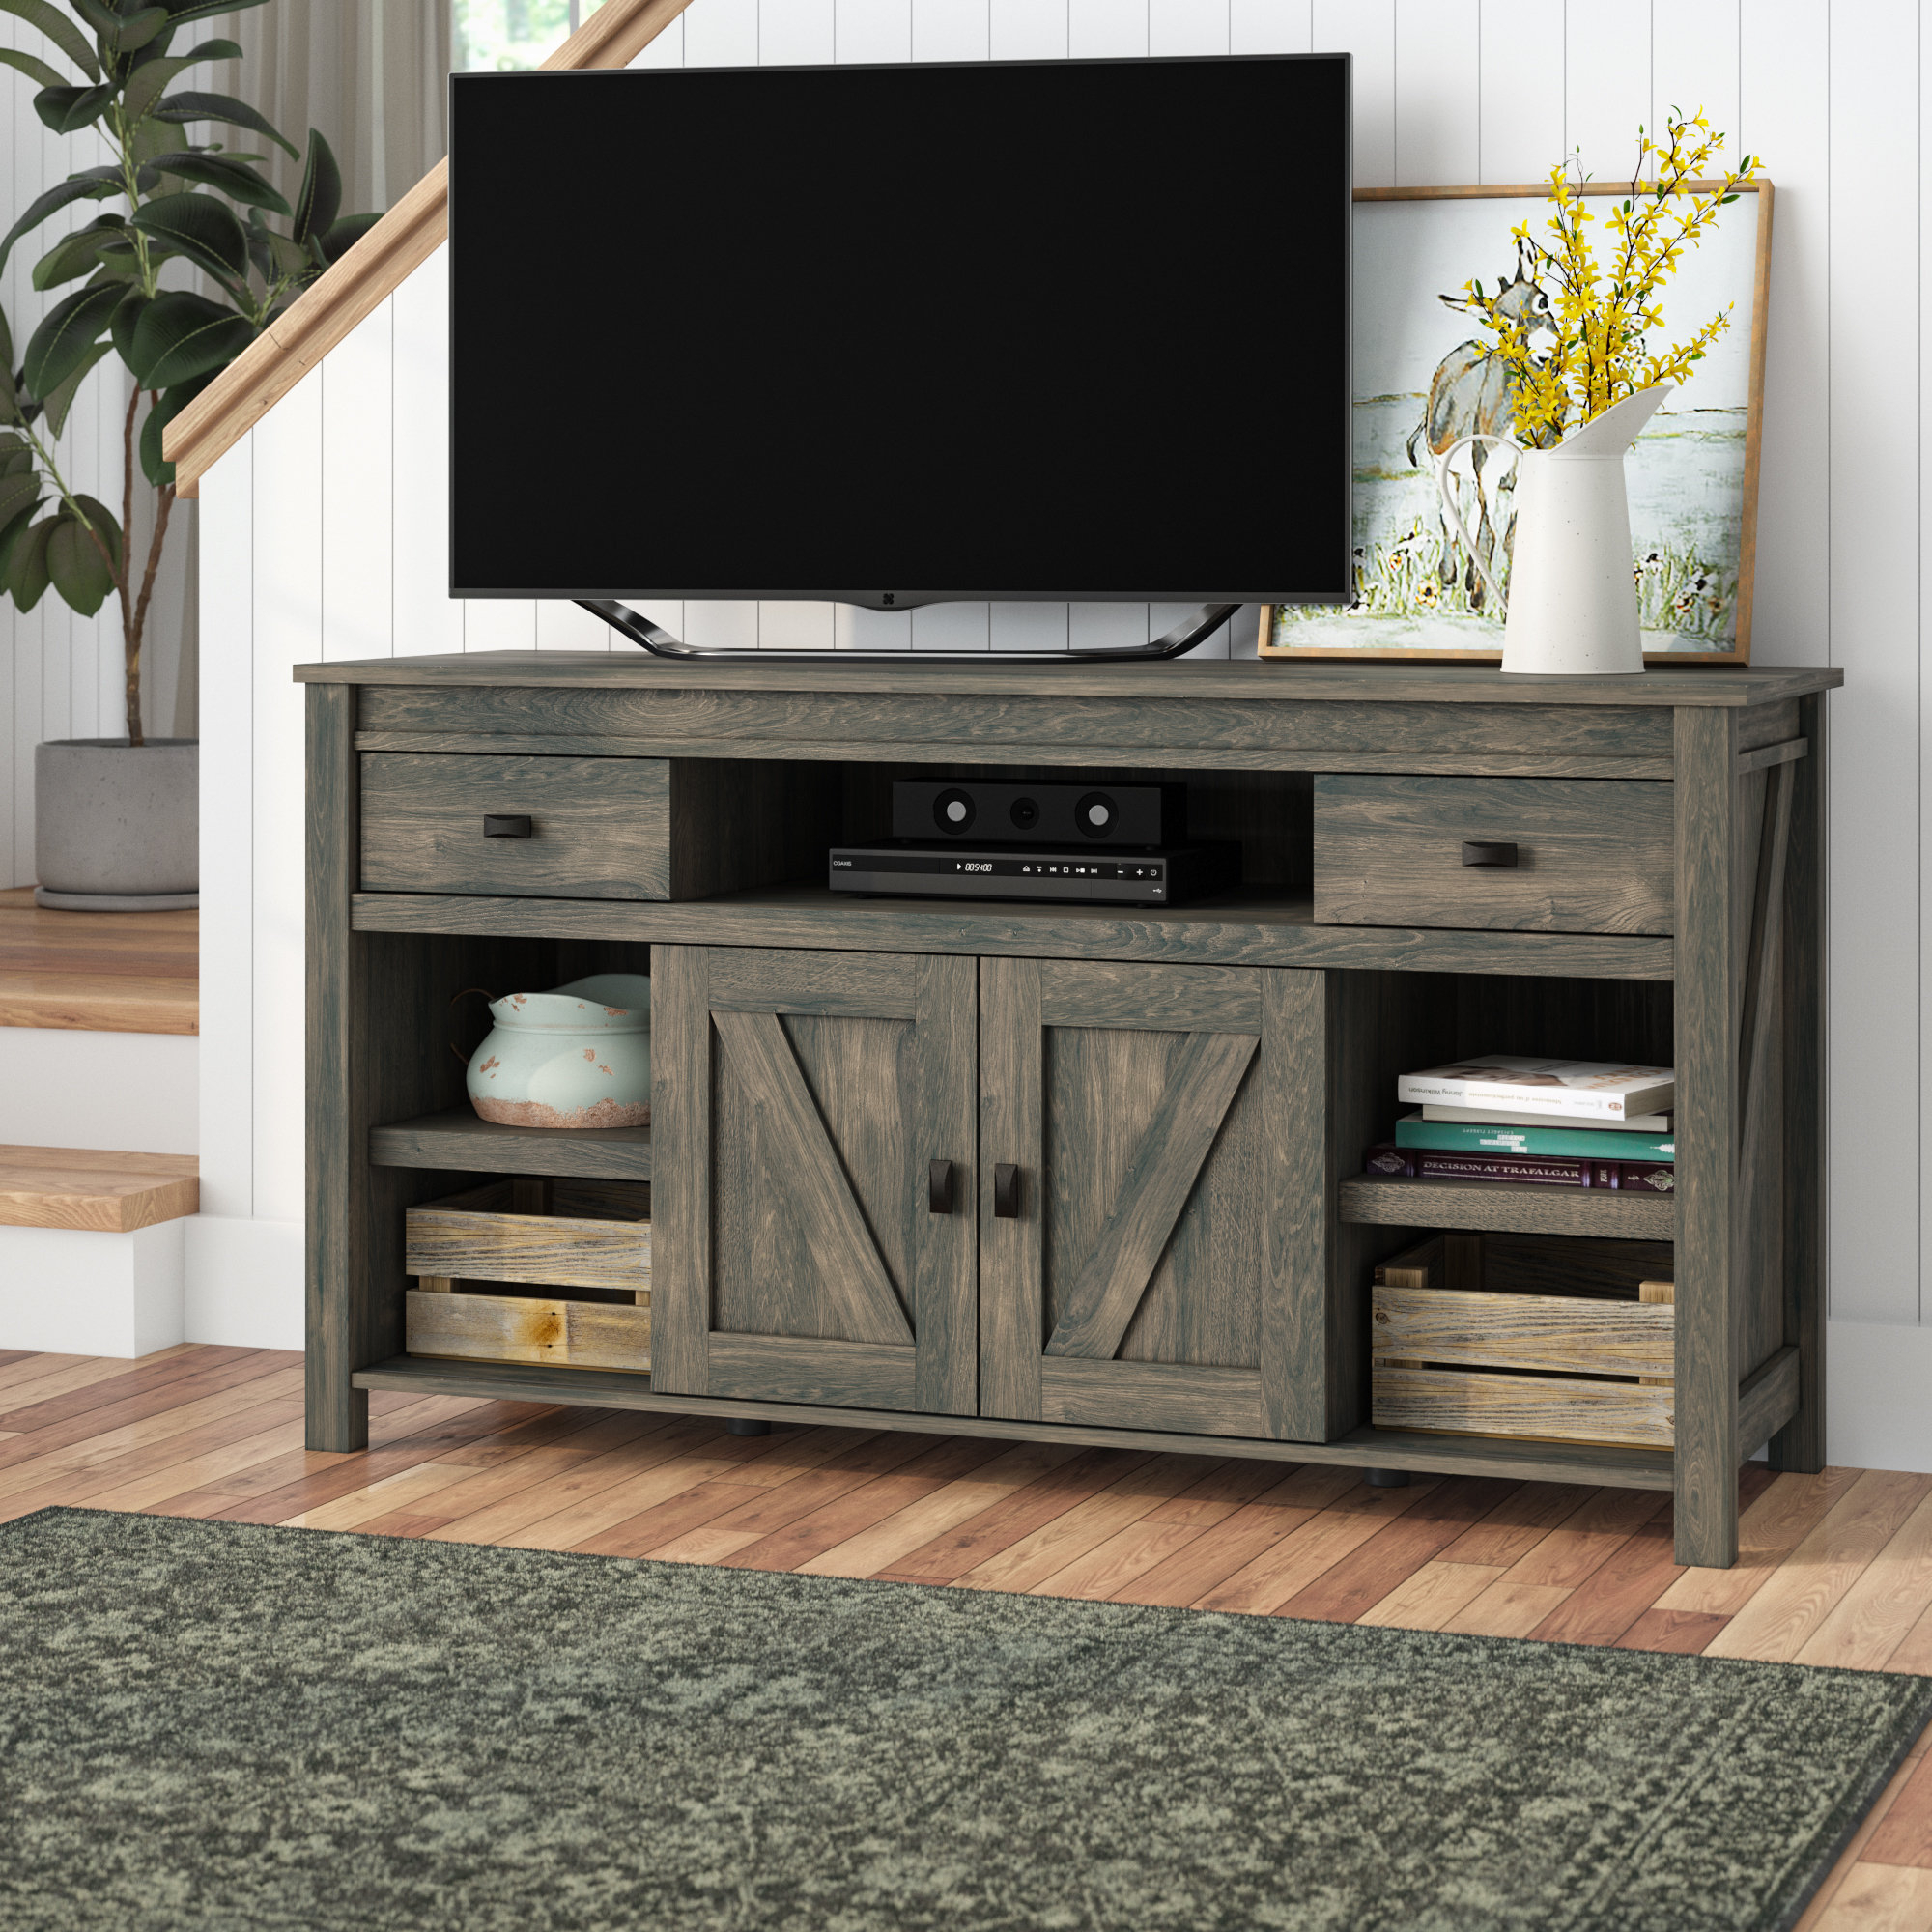 60 64 Inch Tv Stands | Birch Lane Regarding Edwin Grey 64 Inch Tv Stands (View 4 of 30)